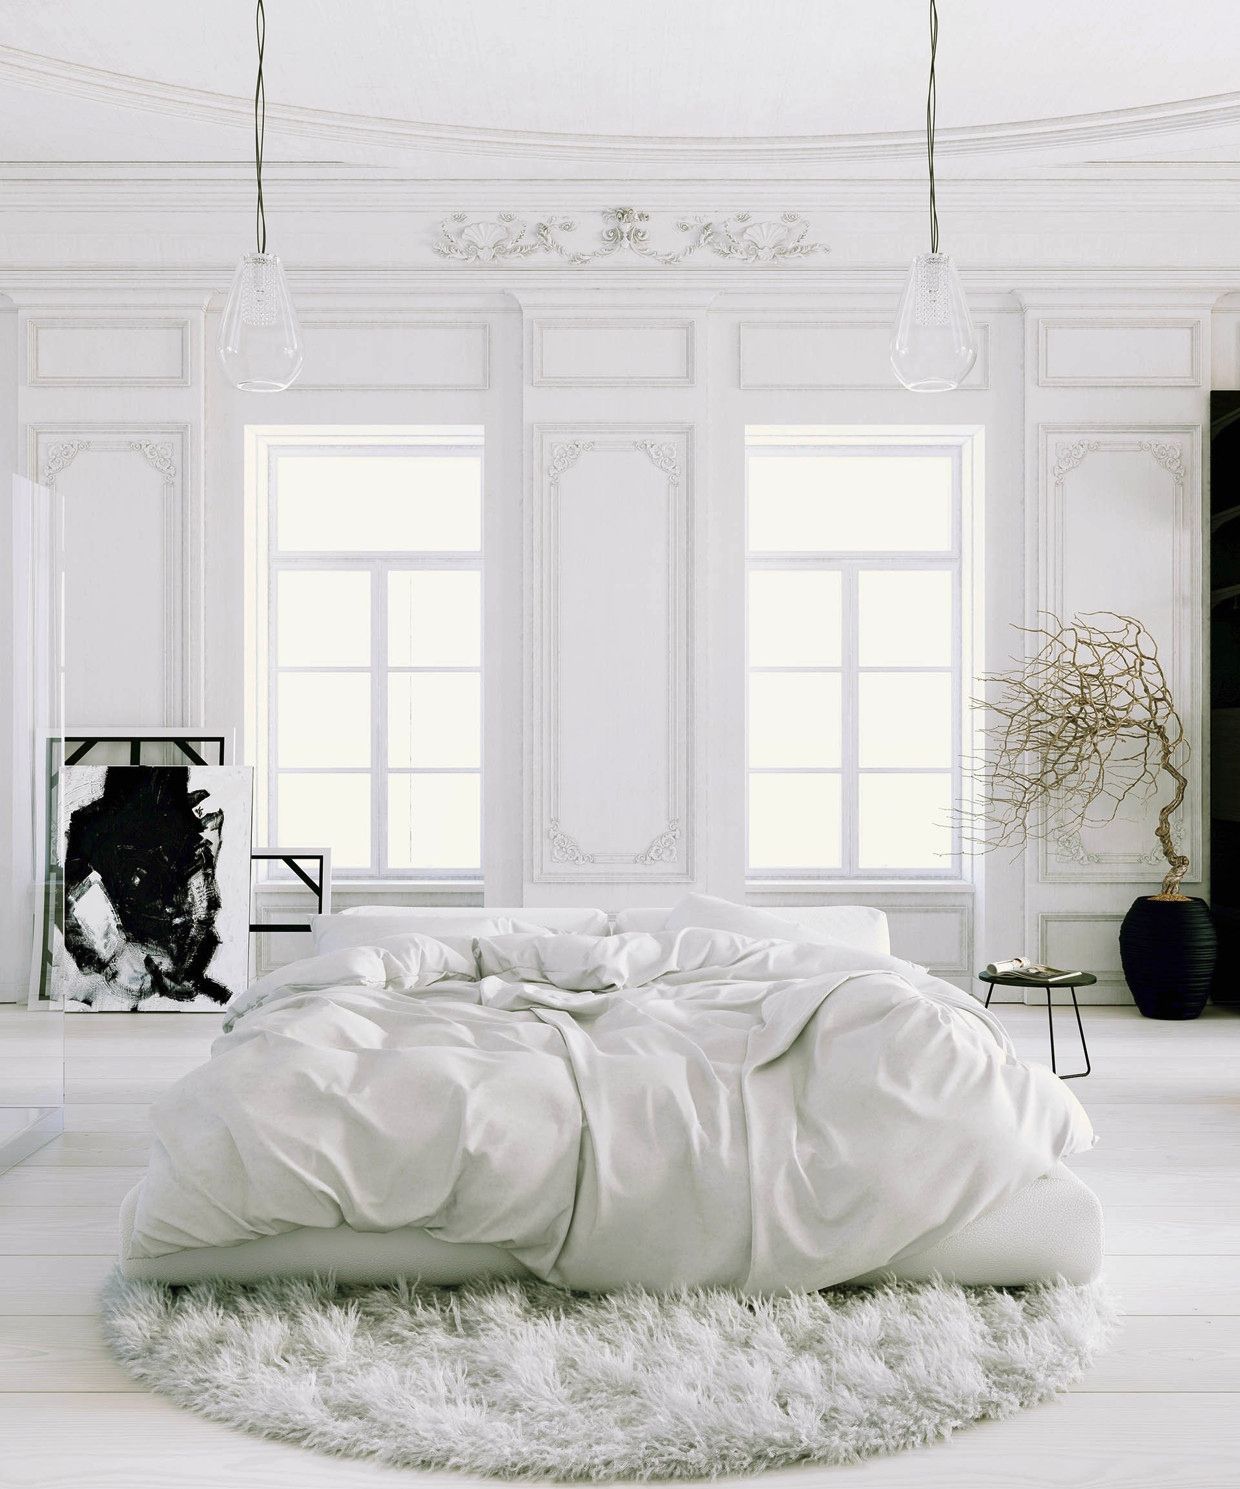 White Decorated Rooms: 7 Tips For Creating The Perfect White Bedroom